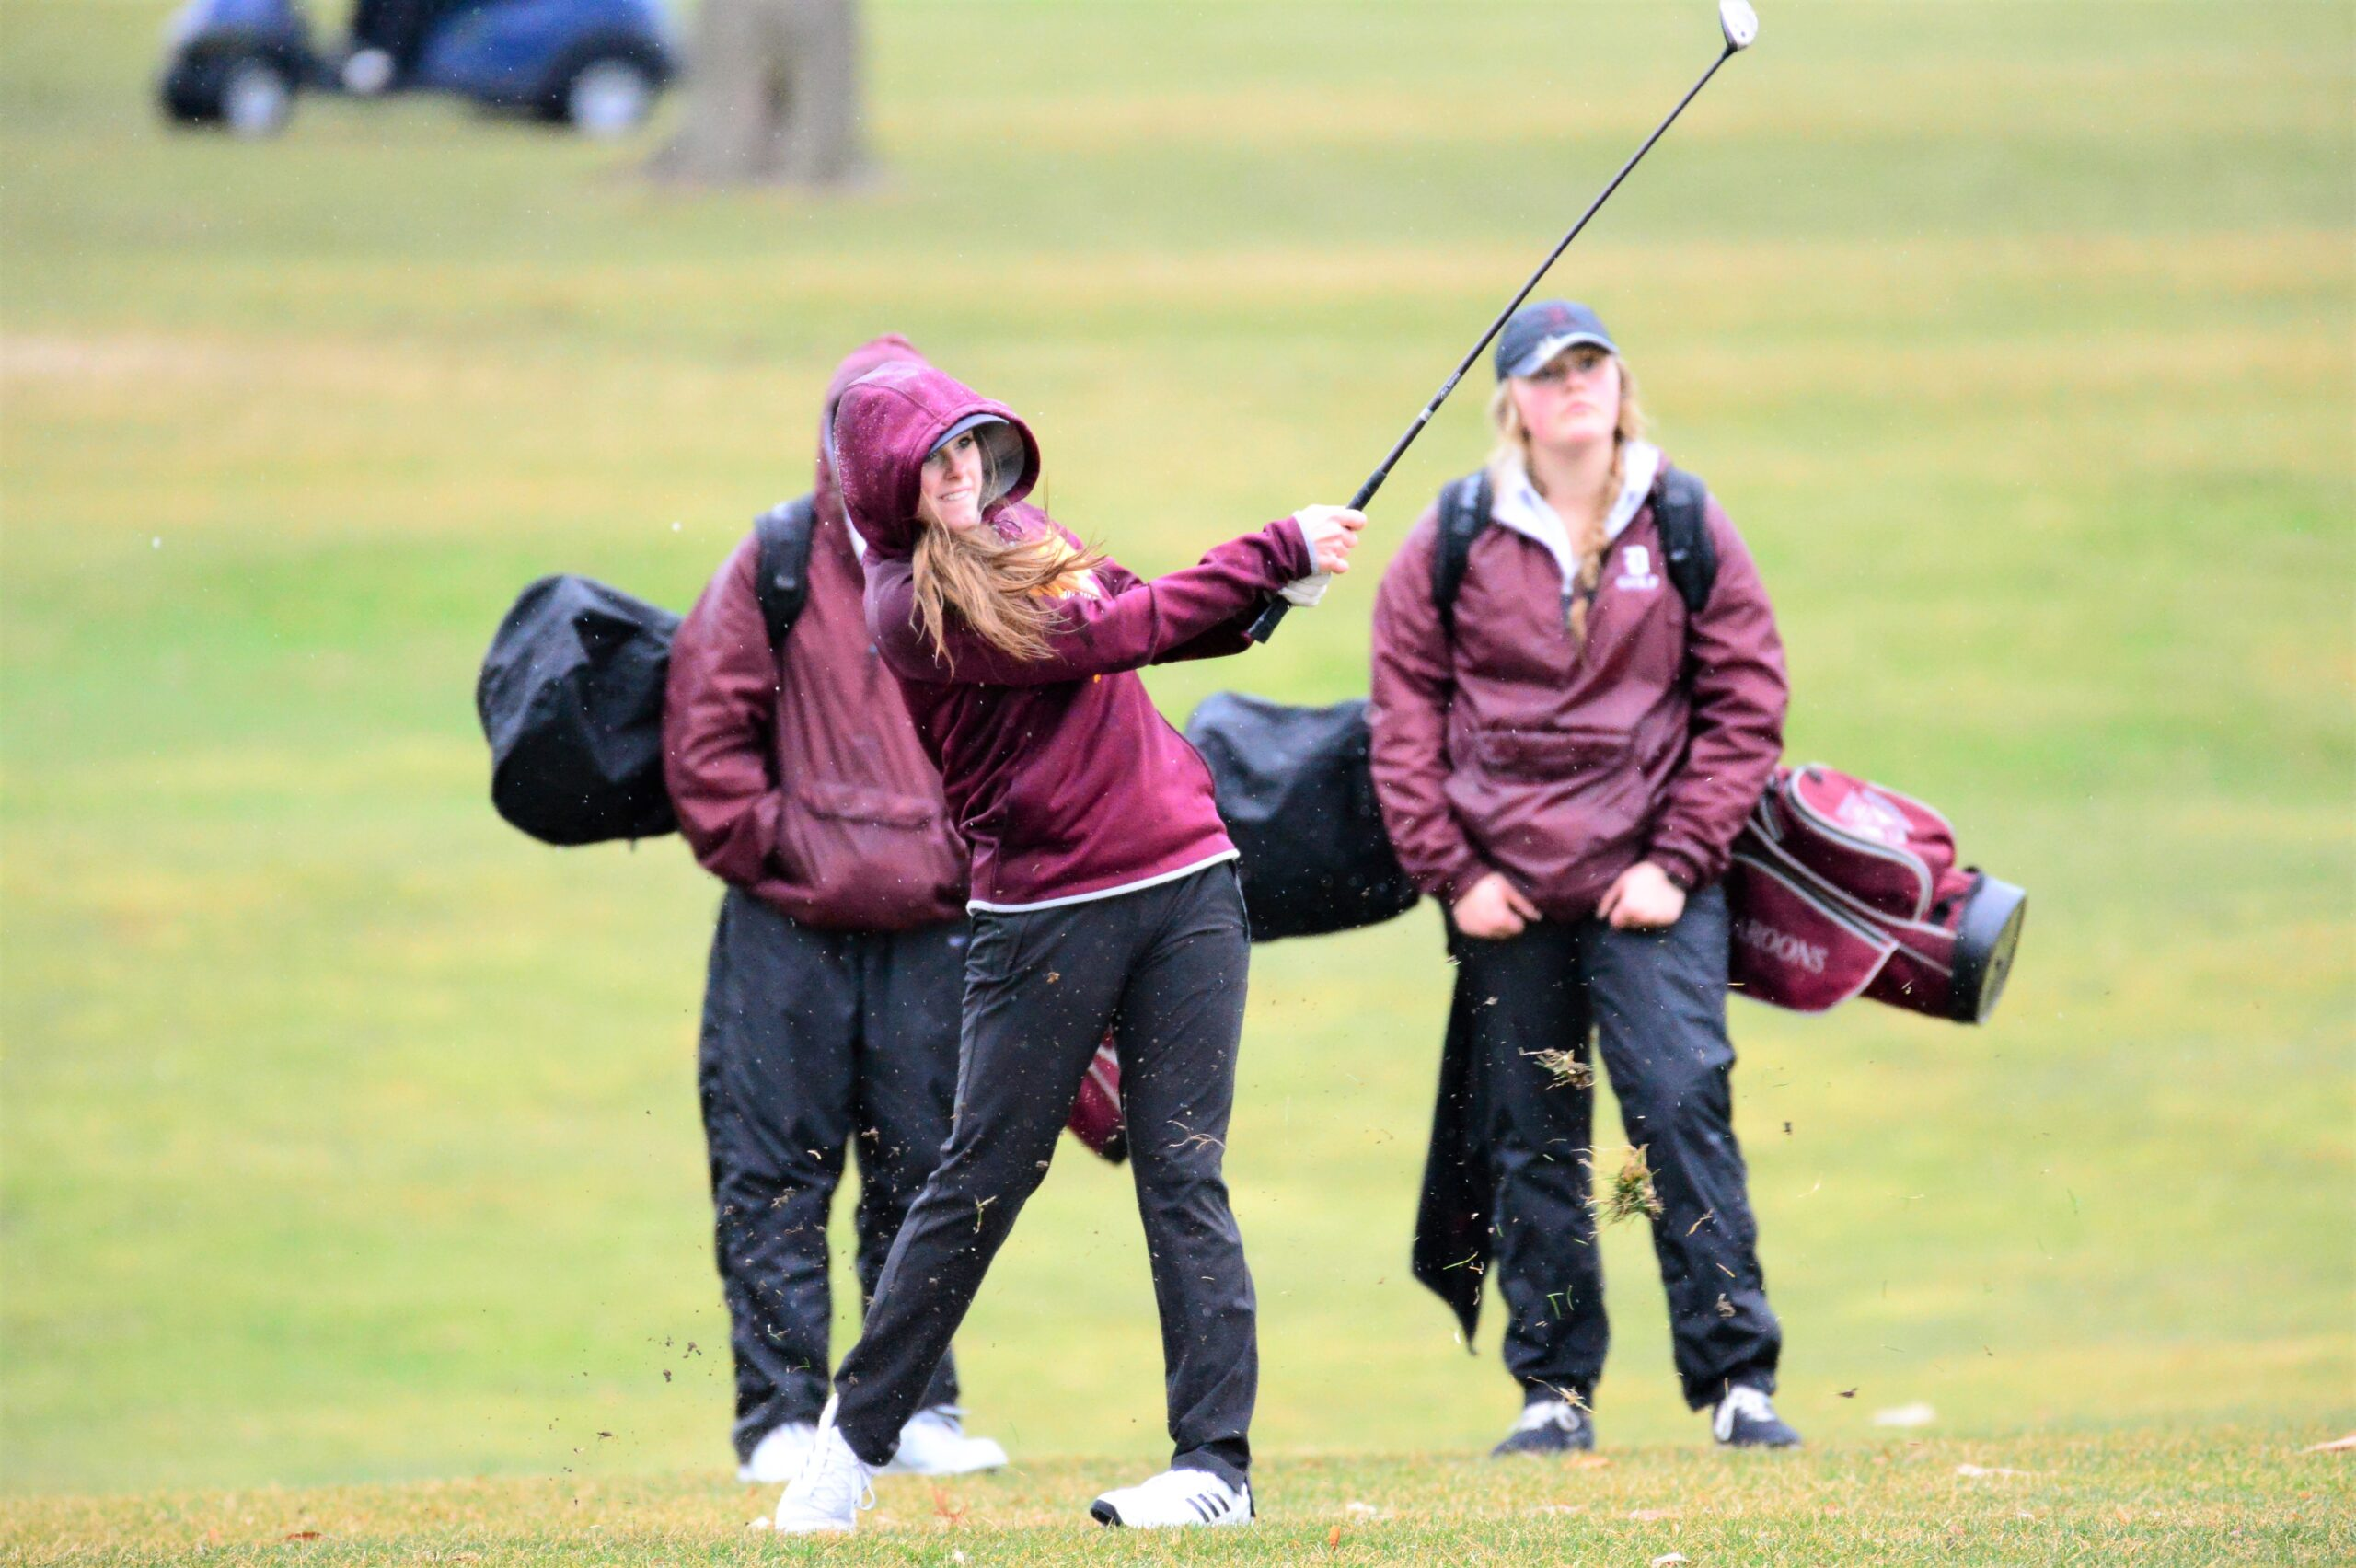 Ankeny Fanatic Preps of the Week: Claire Beath and Rachel Moore, girls' golf